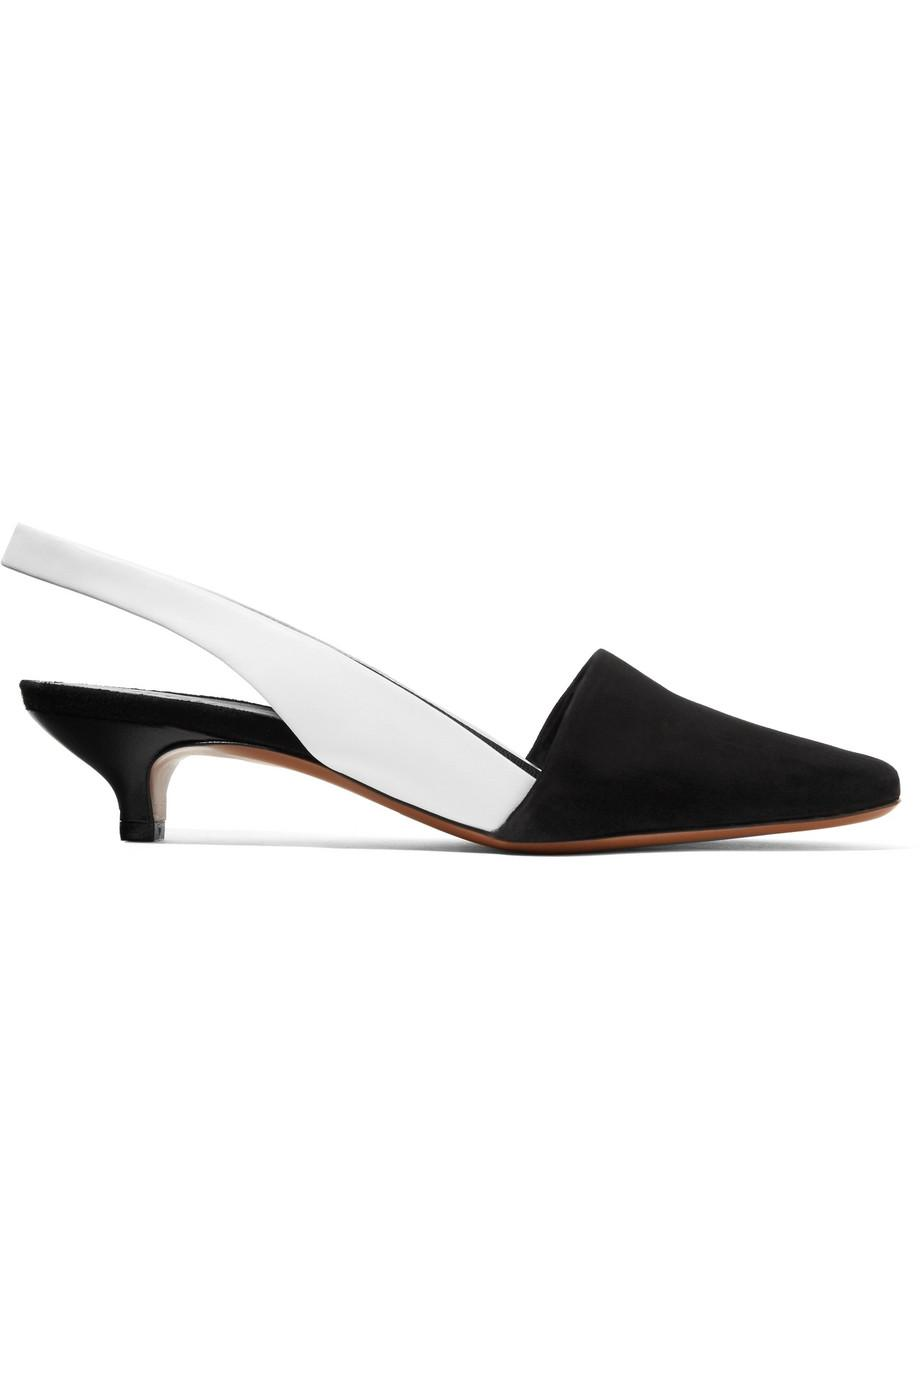 Free Shipping Good Selling Neous Podium Suede And Leather Slingback Pumps Best Prices Cheap Price mfzOupqz9S